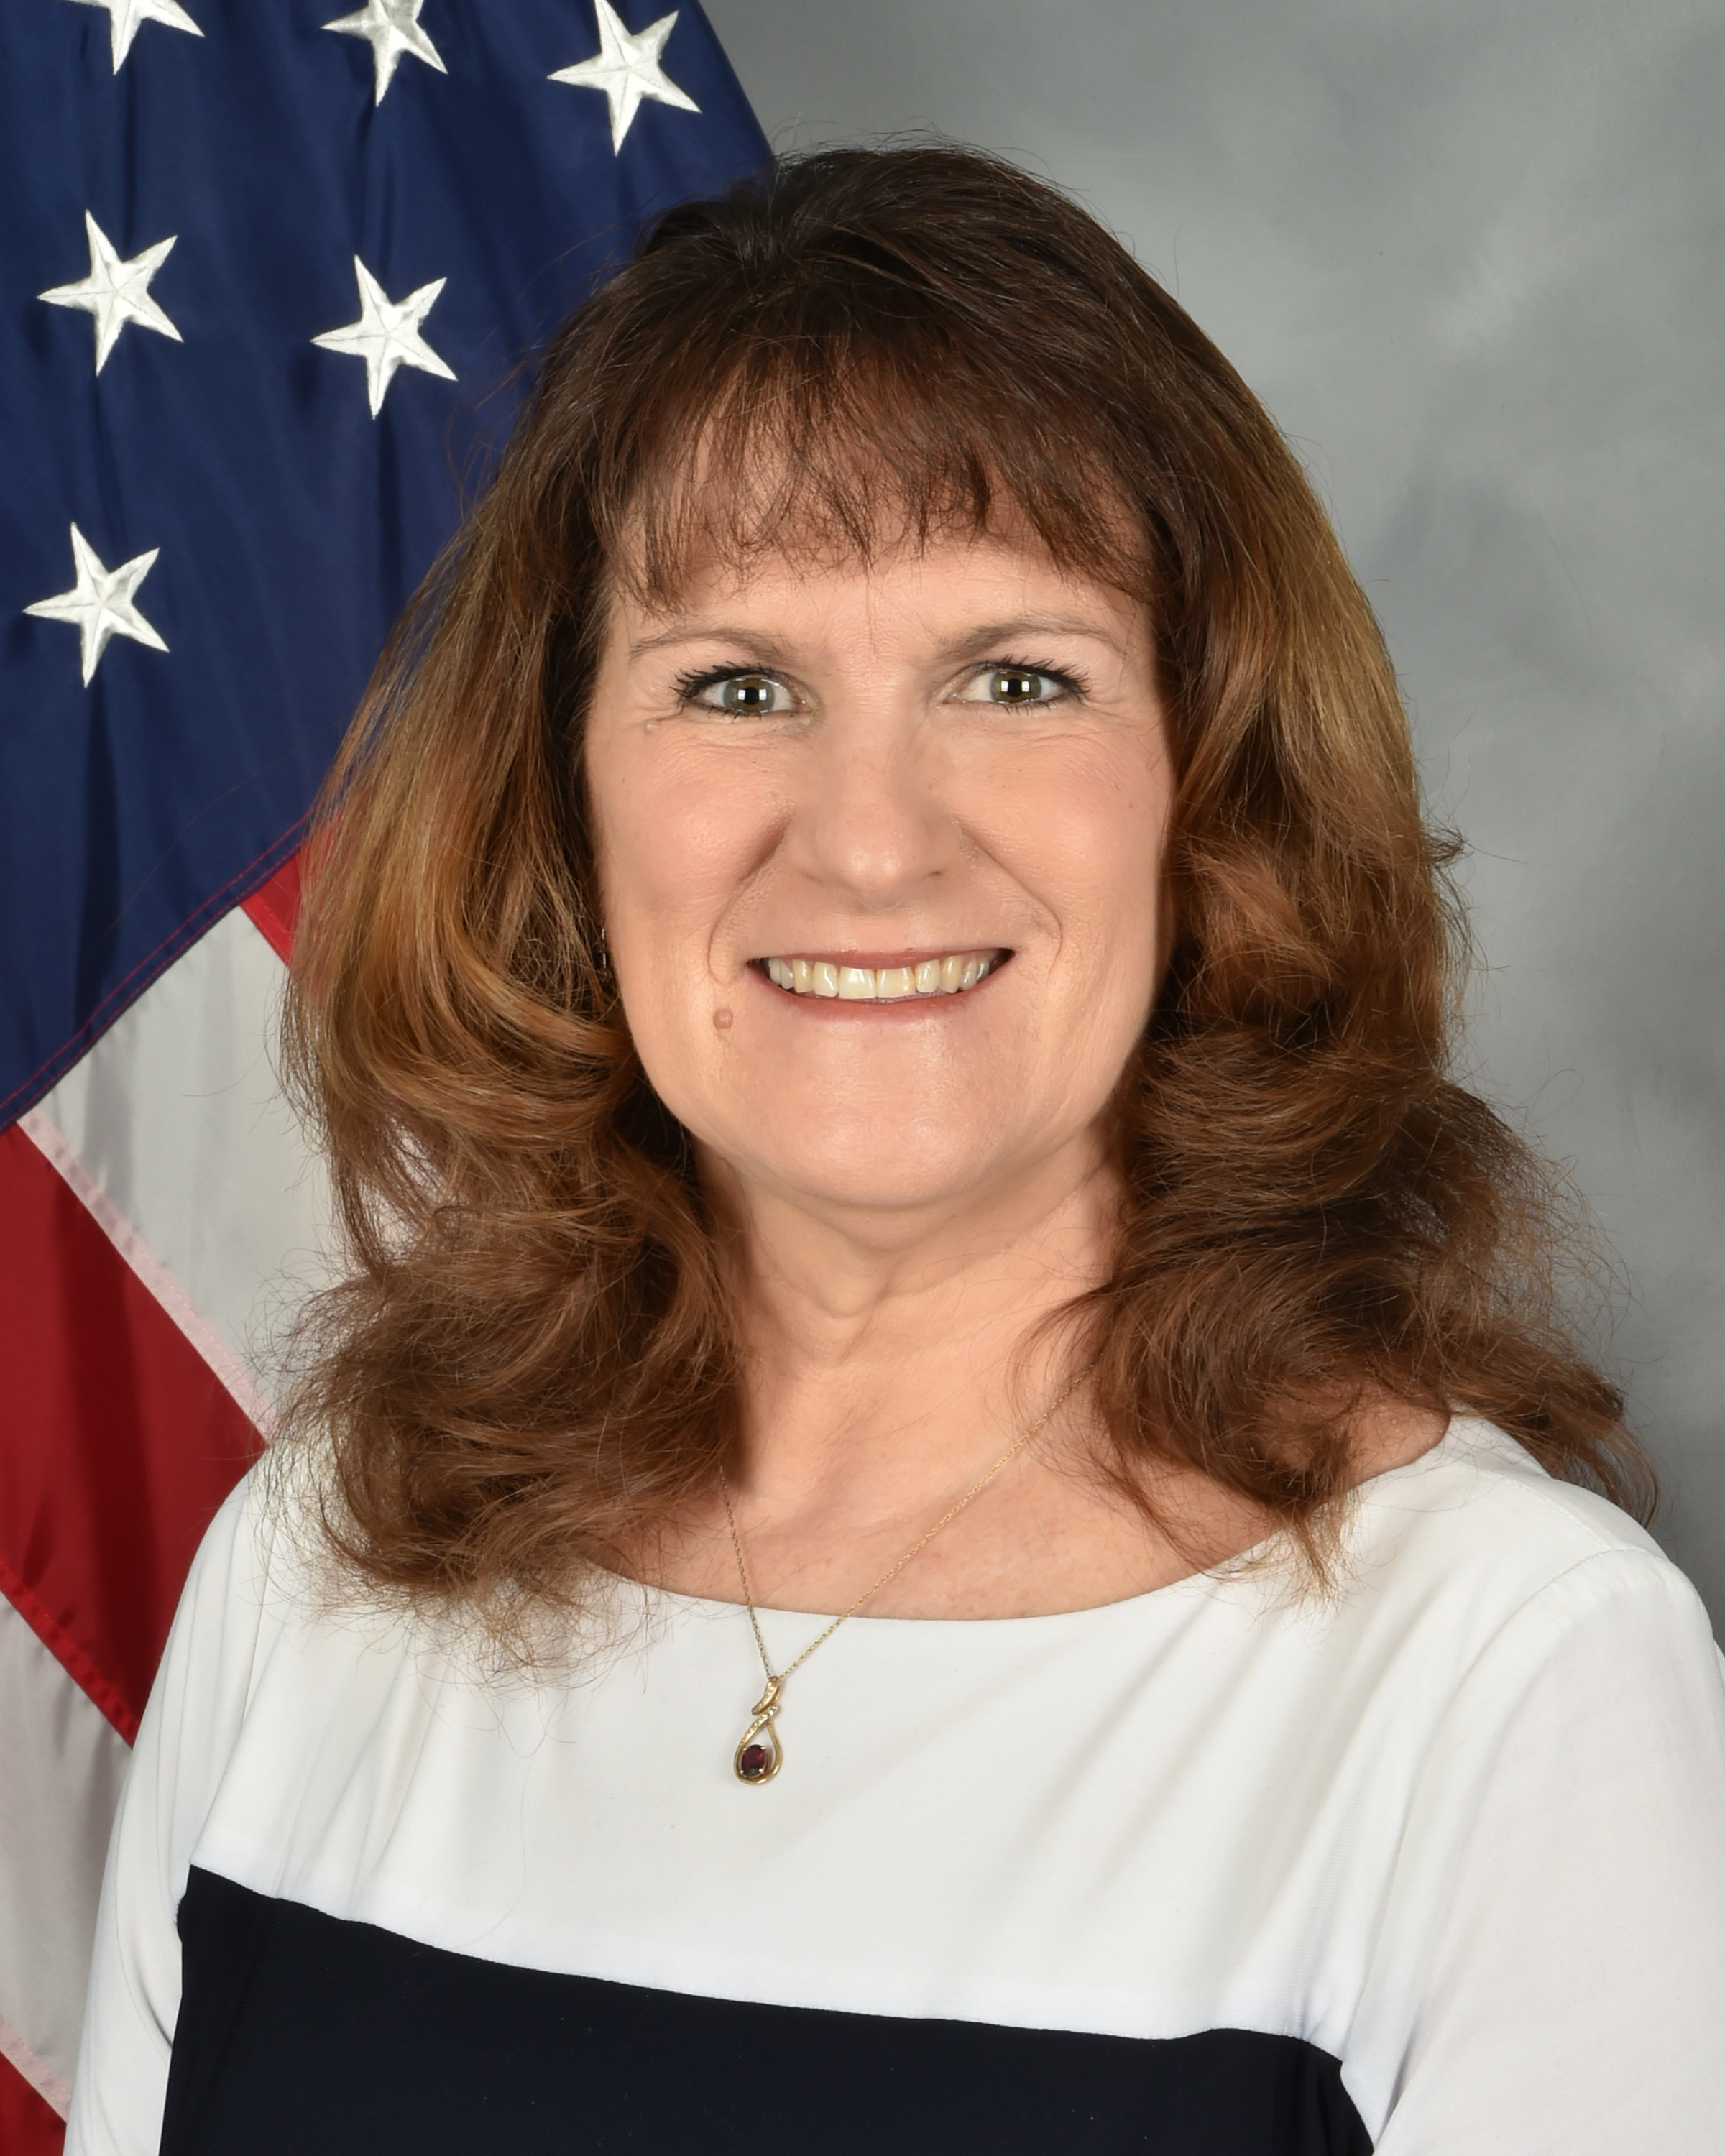 Nancy Sweet-Fitzgibbons, DNAP, CRNA, Phase 2 Assistant Clinical Site Director: William Beaumont Army Medical Center